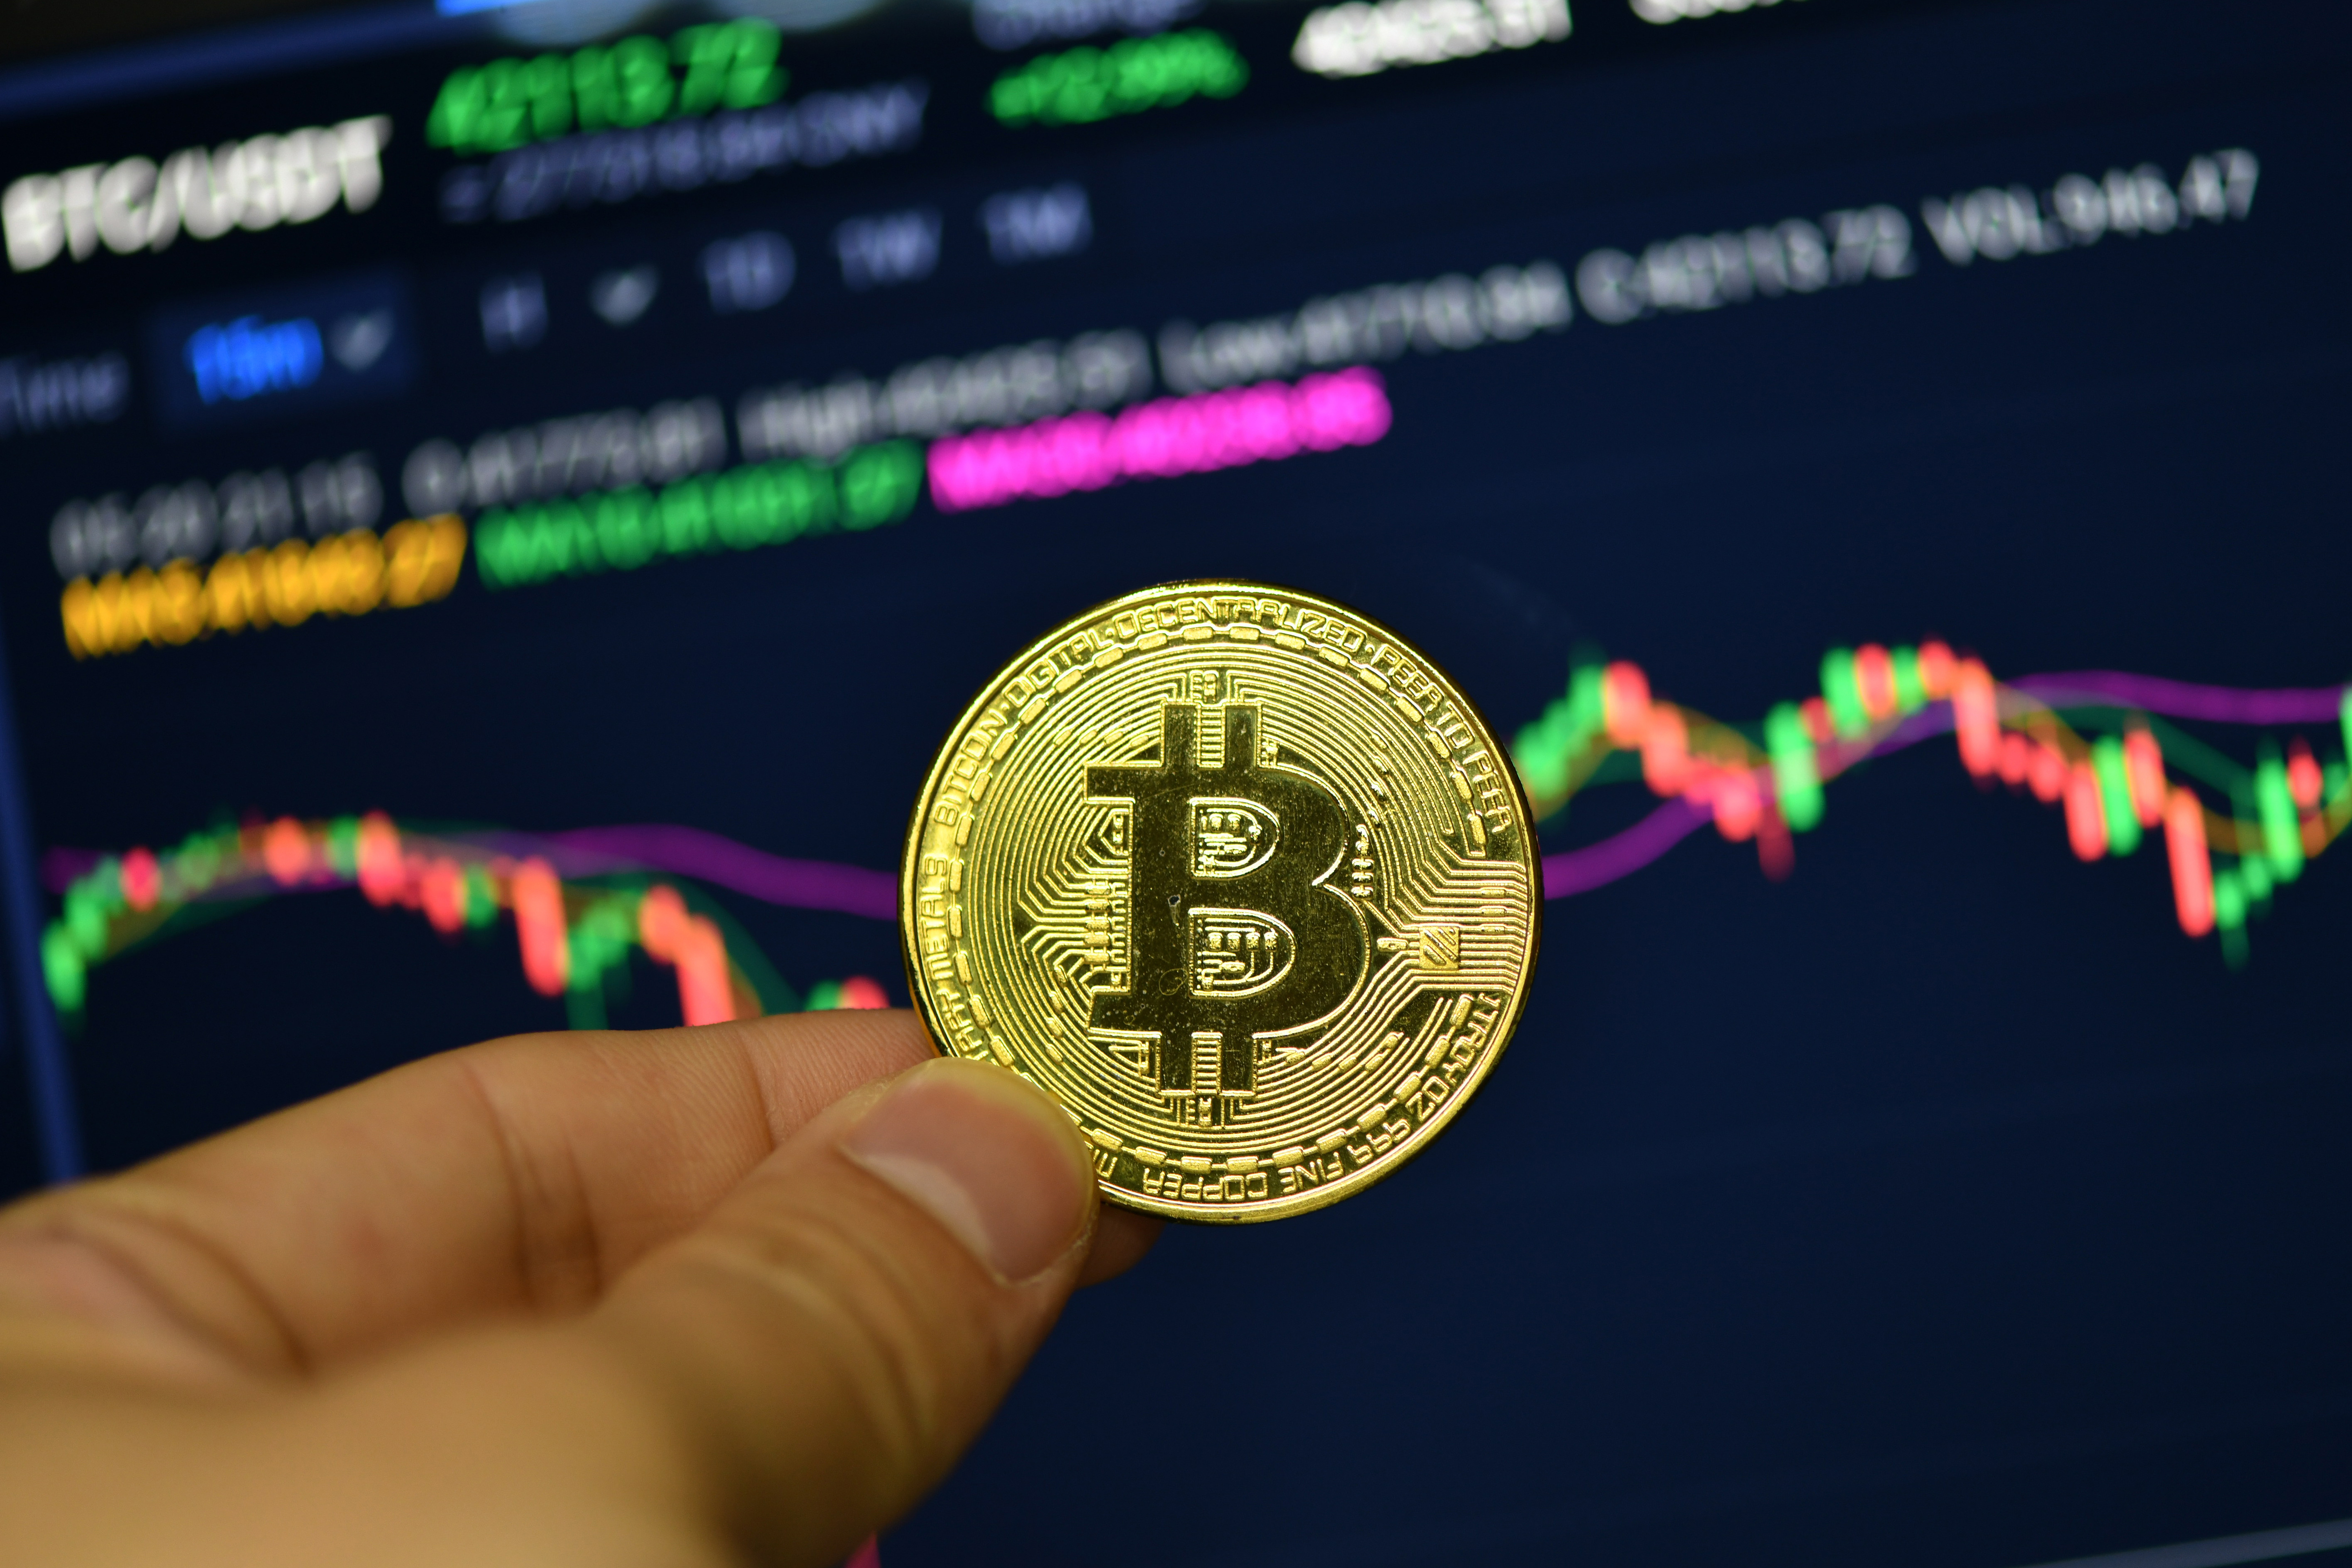 Bitcoin price jumps amid rumours Amazon might accept crypto payments